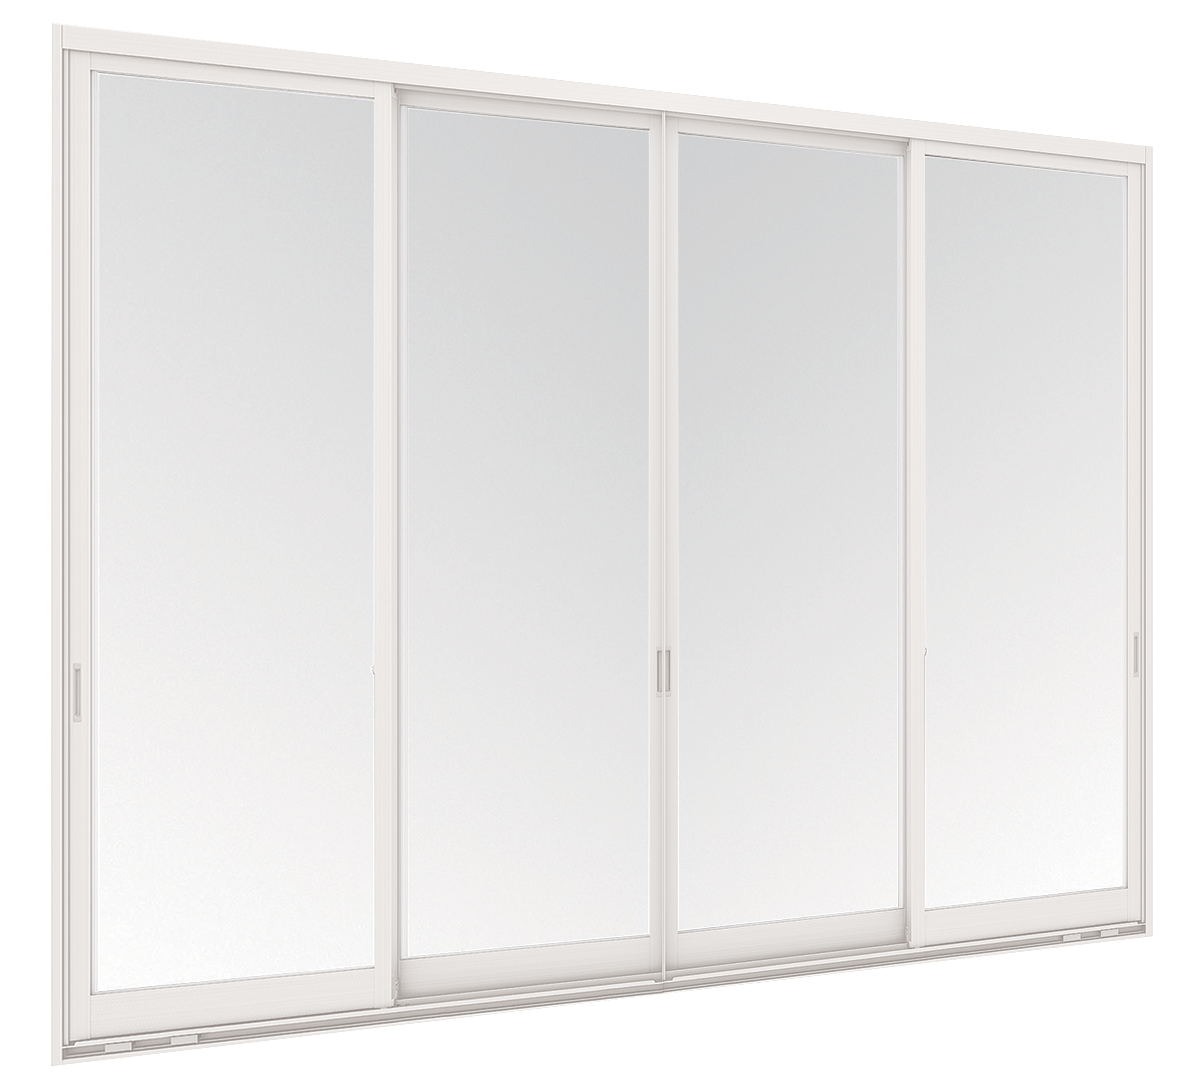 Aluminium Sliding door - 4 panels on 2 tracks